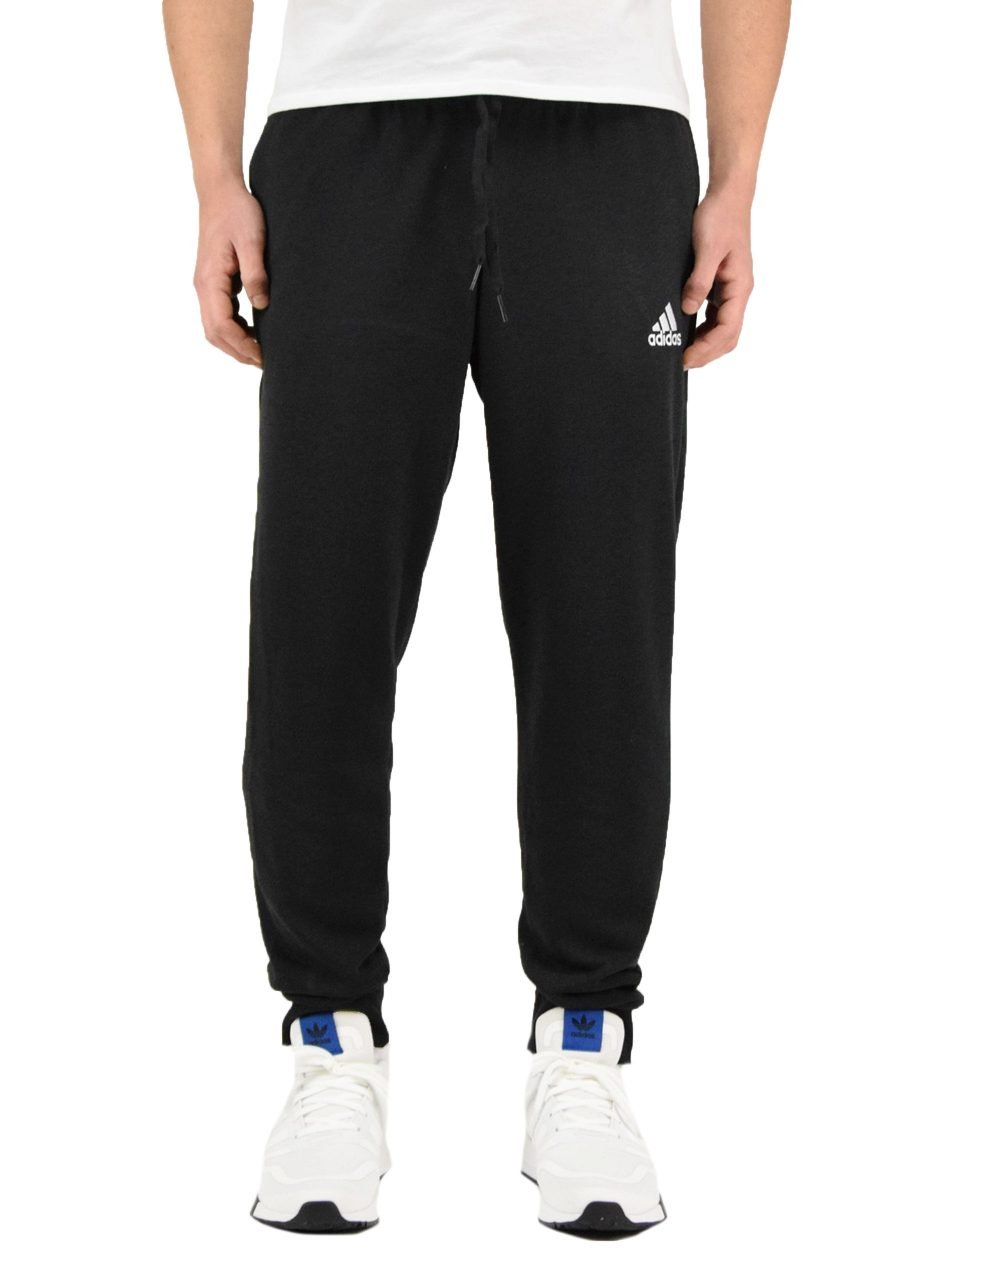 Adidas Essentials French Terry Tapered Cuff Pants (GK9265) Black